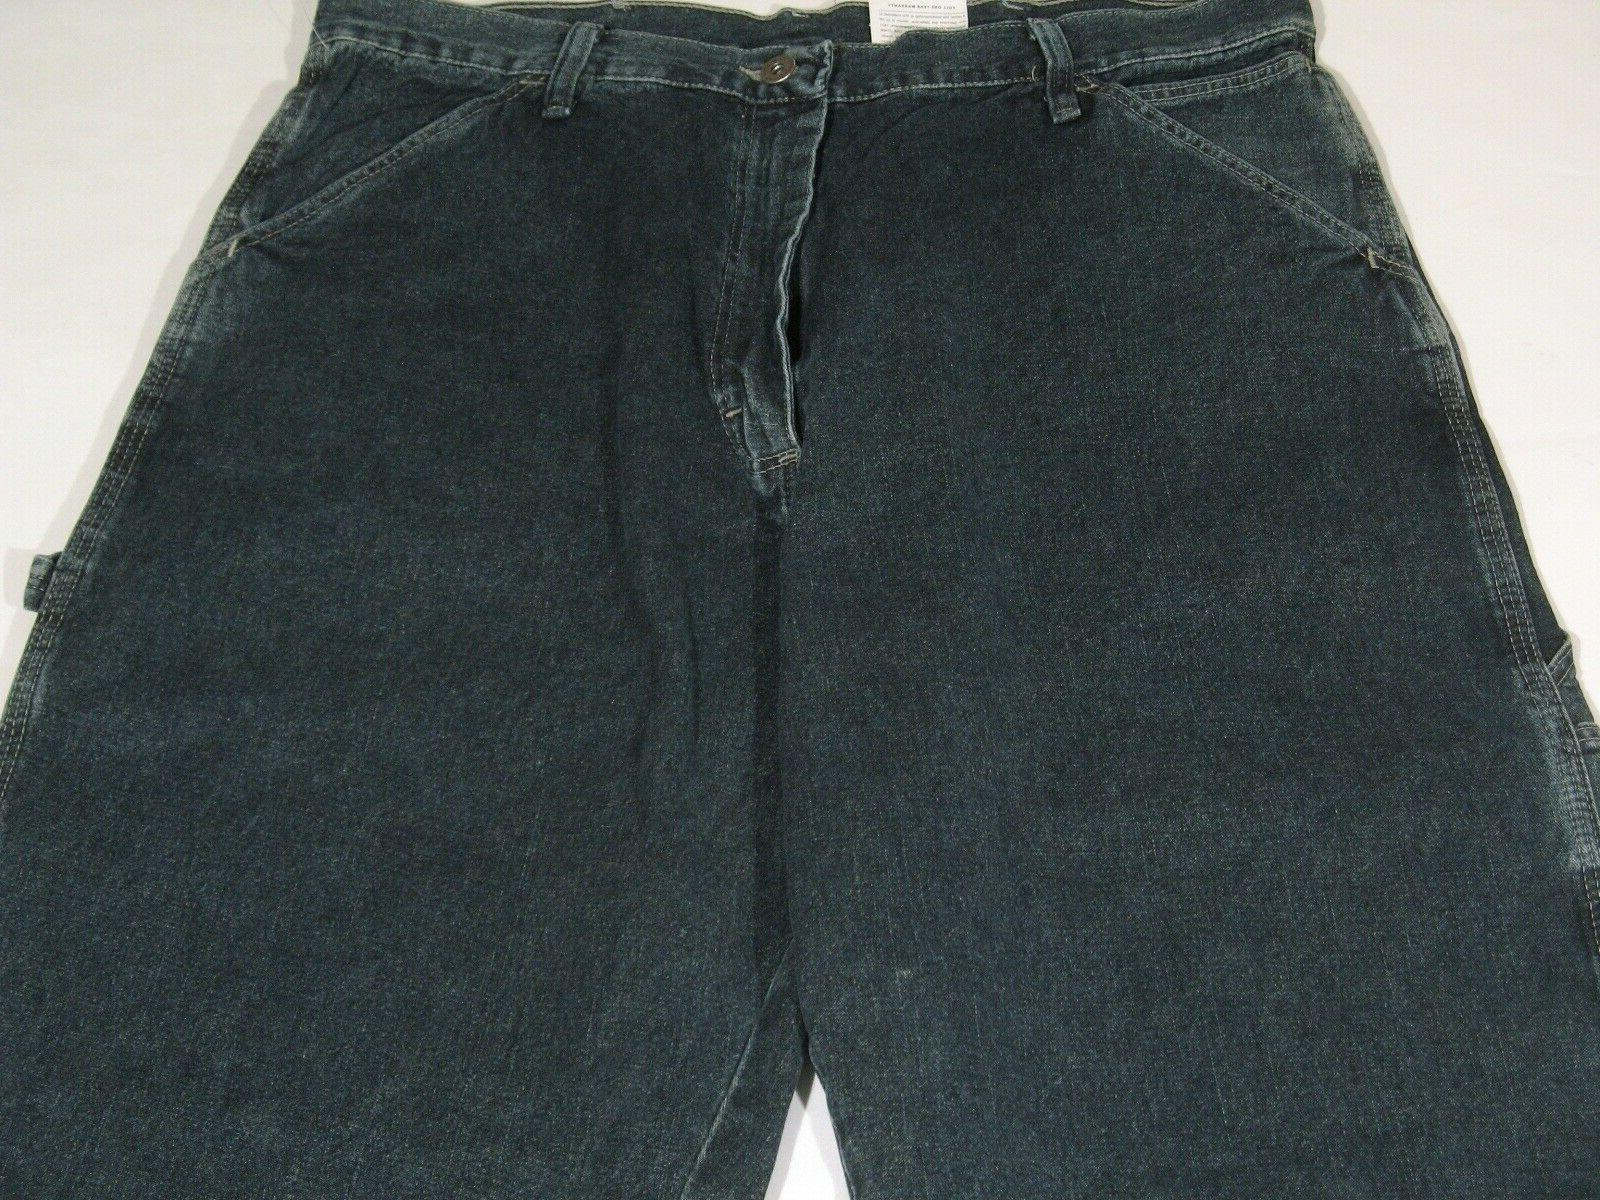 NEW Carpenter Jeans W x New With Tags